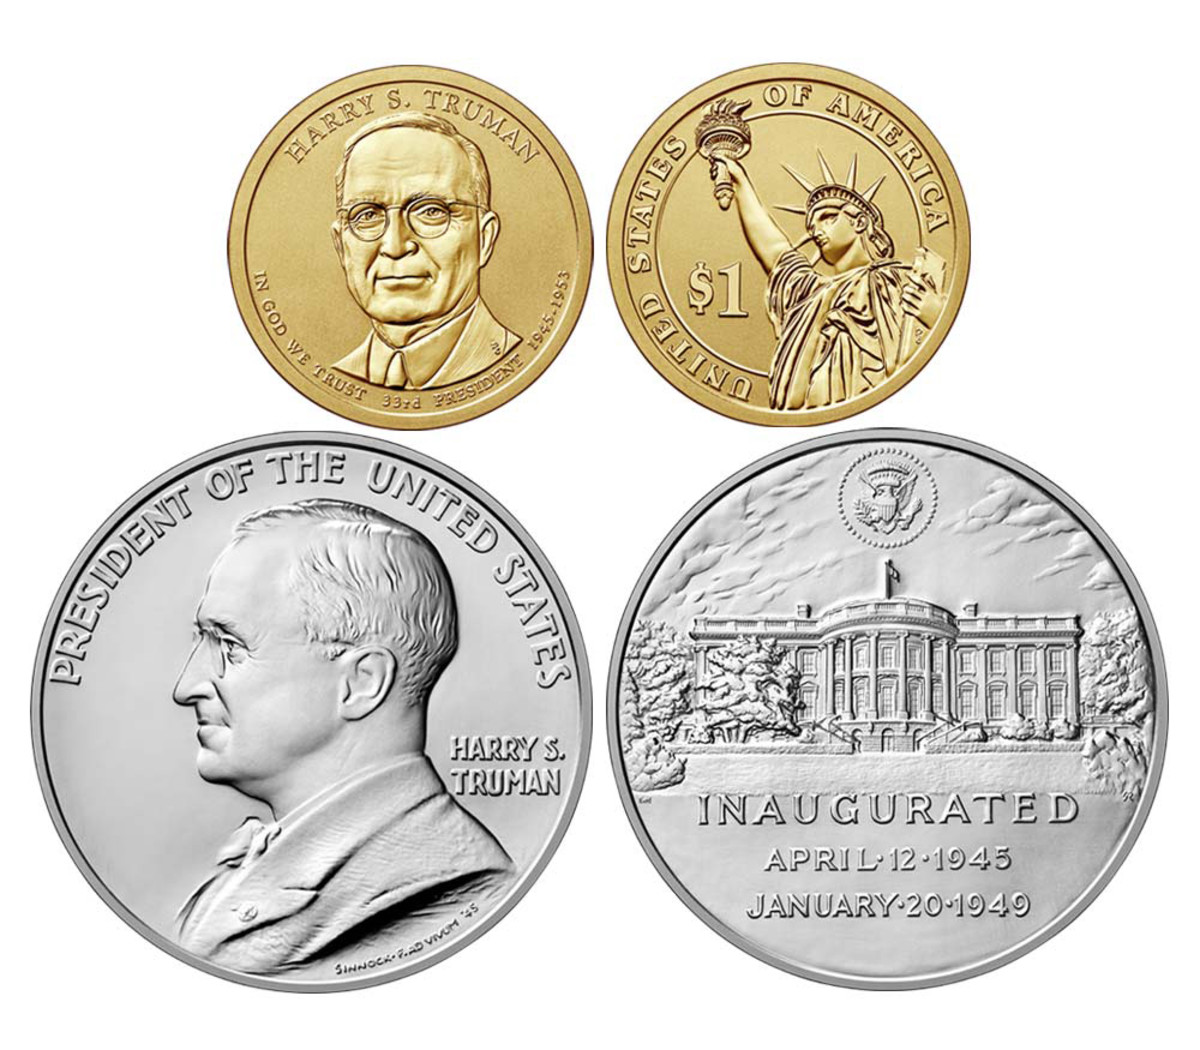 The Truman Coin and Chronicles set contains a reverse proof Truman Presidential dollar and silver Presidential medal.